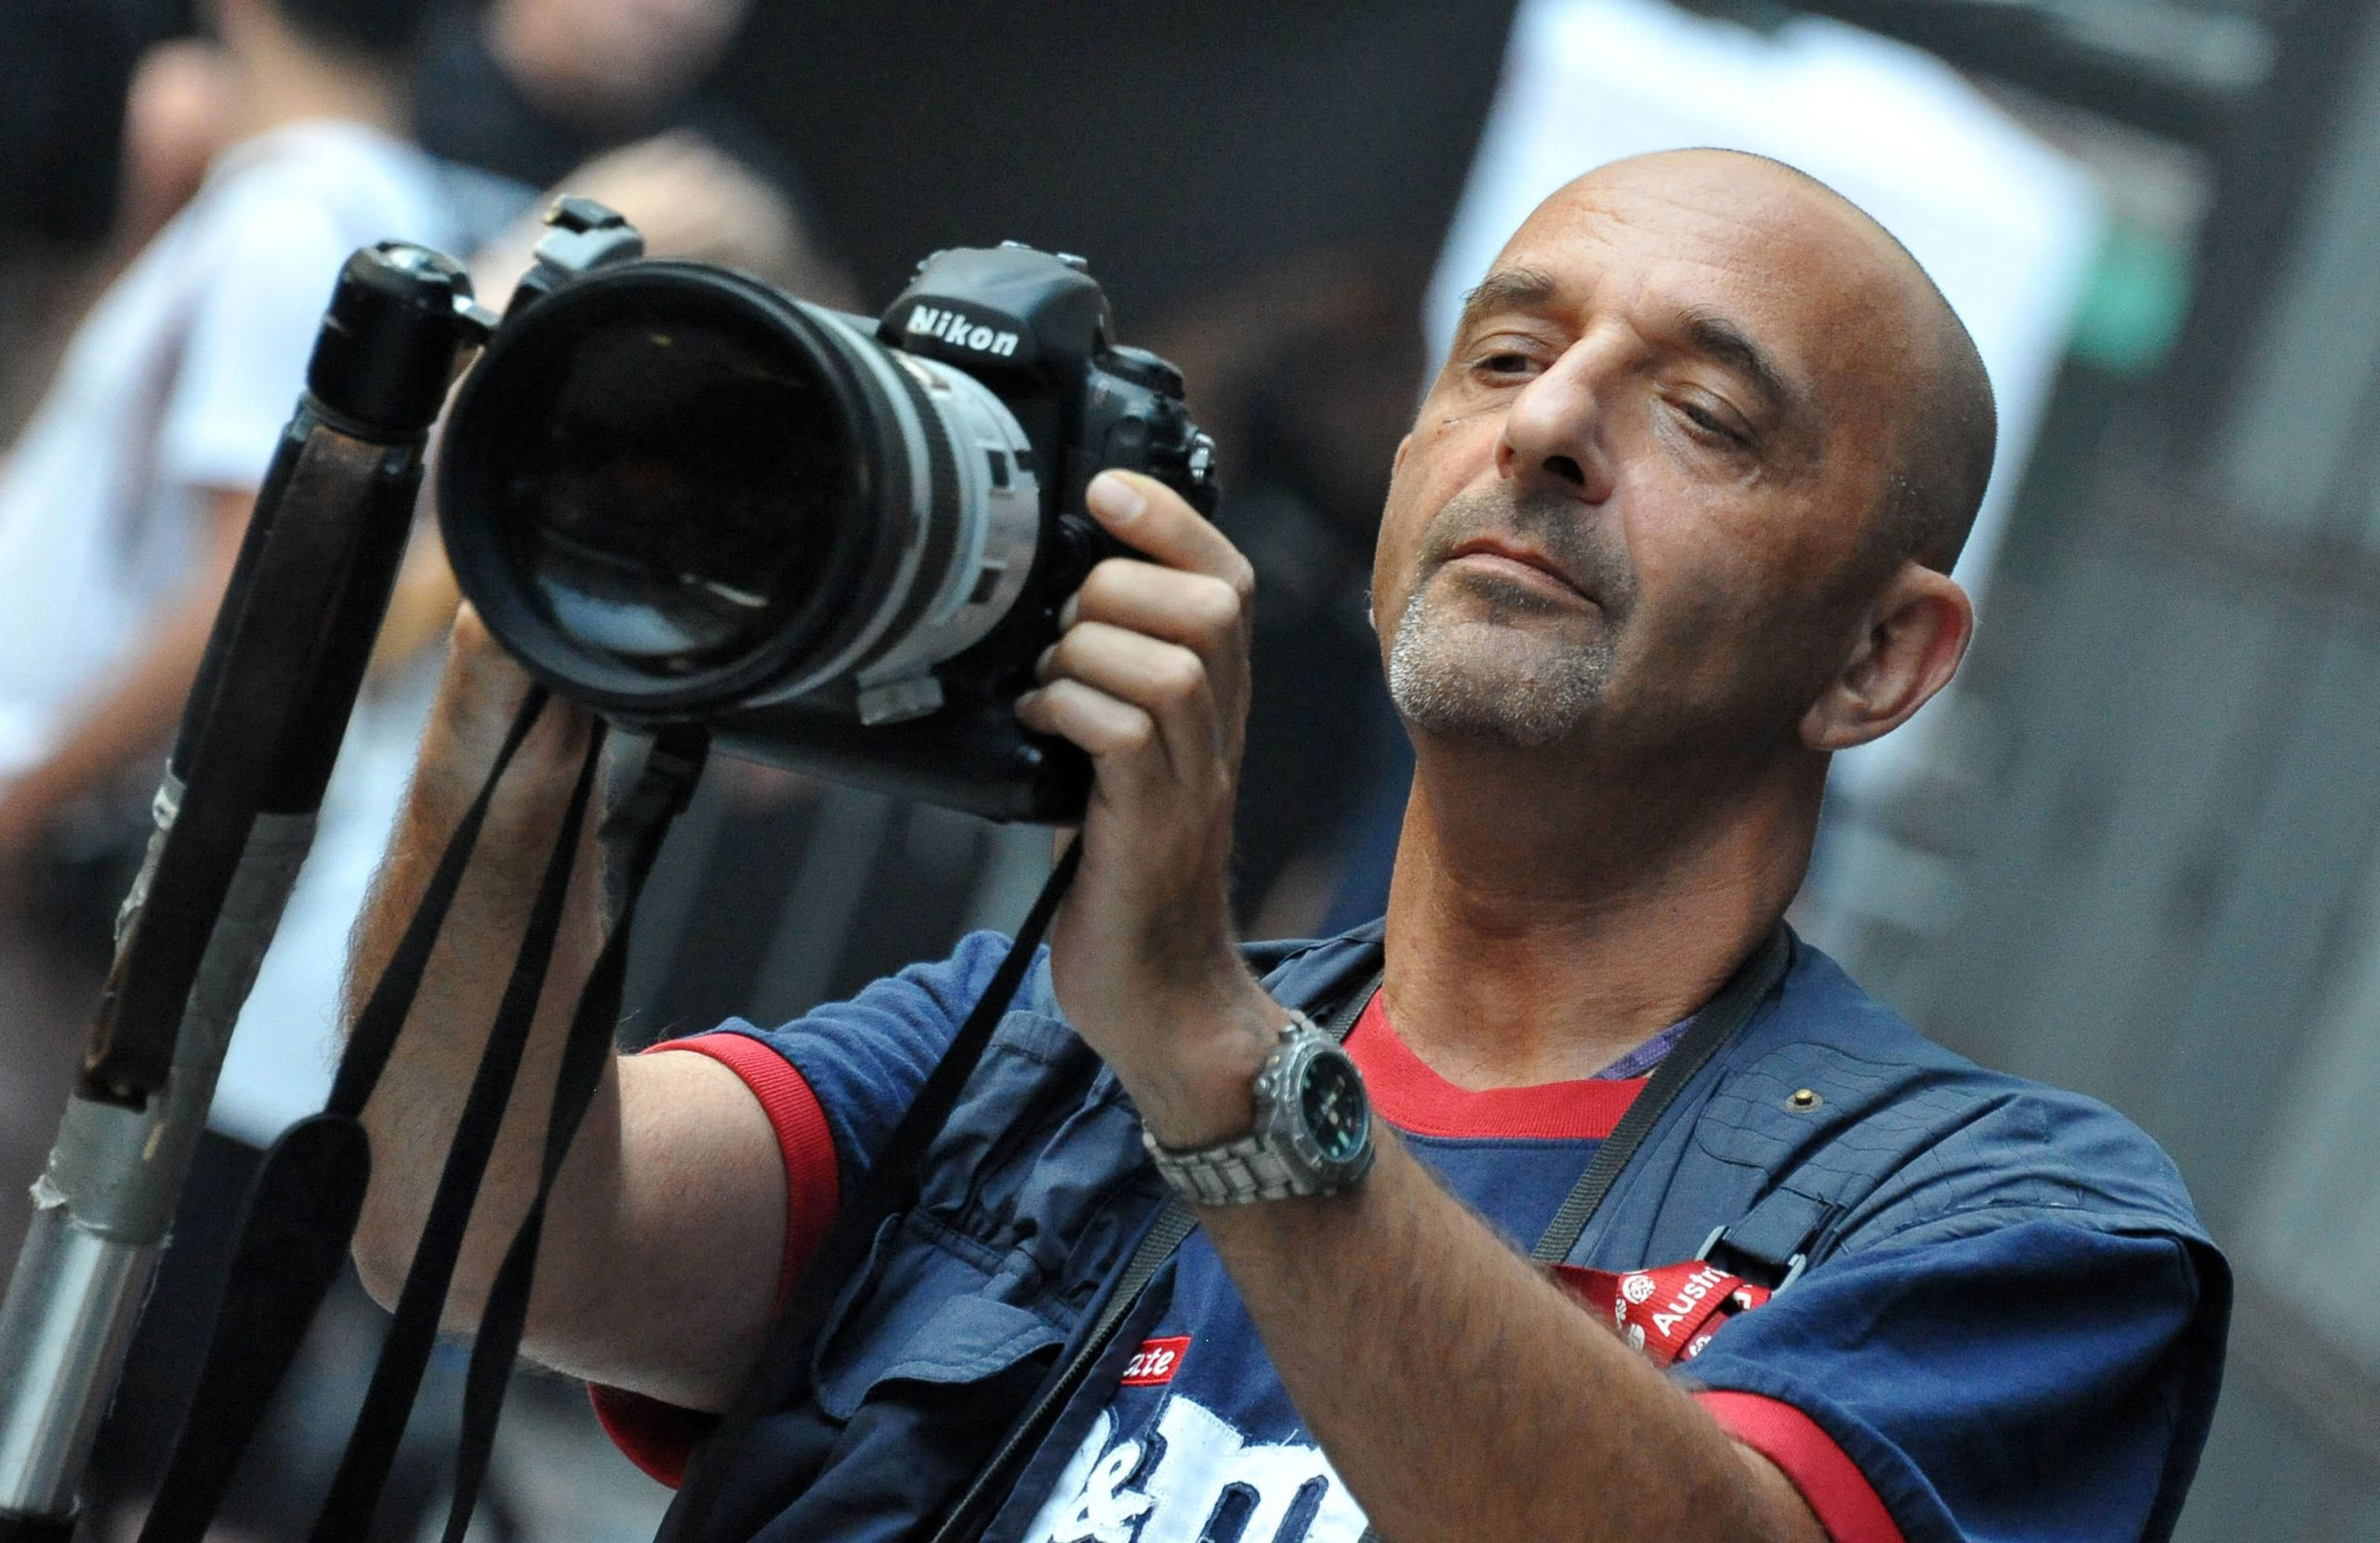 Fabio Diena Photographer and Videomaker, Sport, Entertainment, Reportage, Travel, Food, Still Life